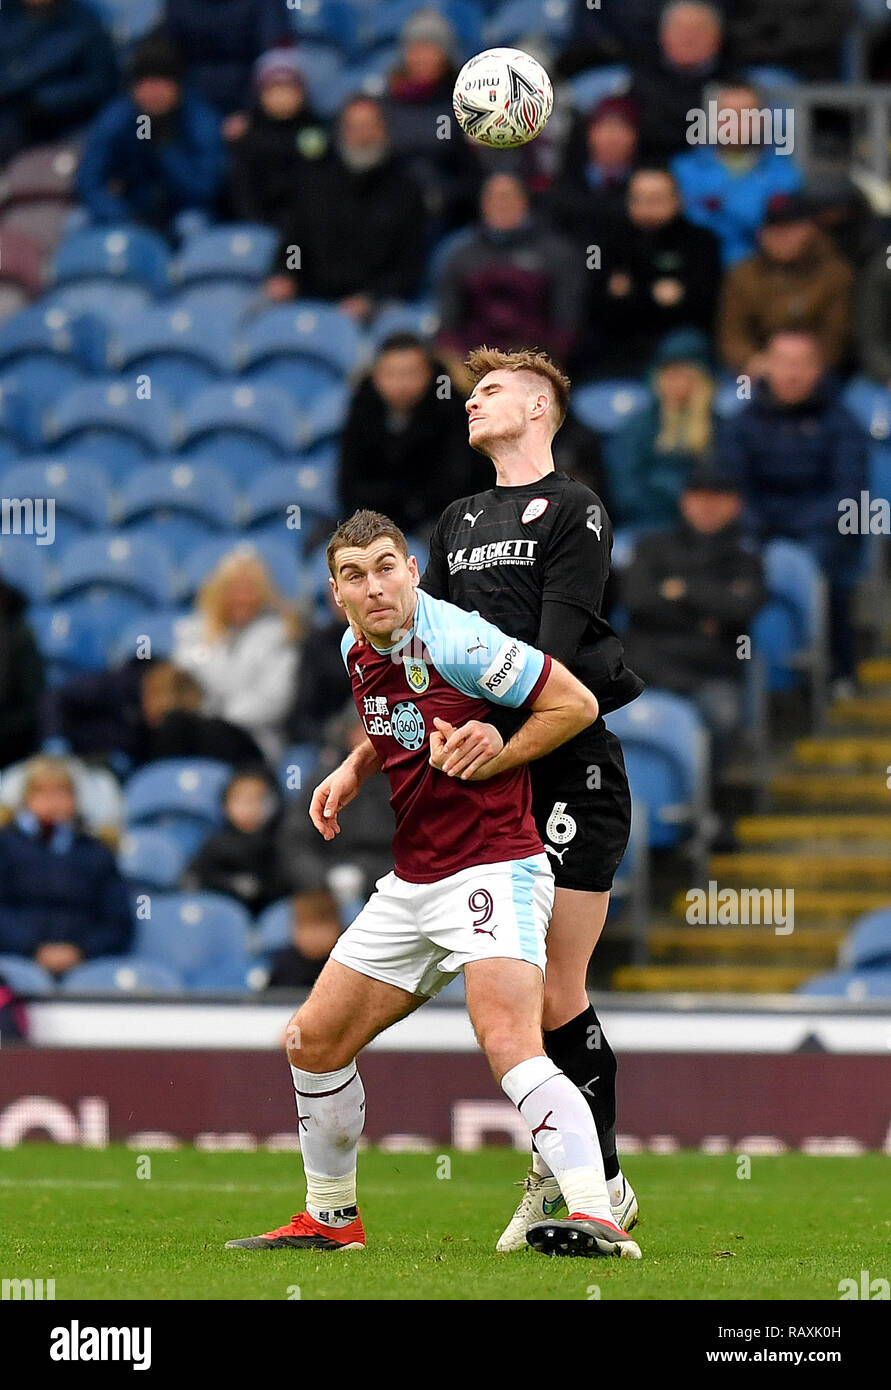 Burnley's Sam Vokes (left) and Barnsley's Liam Lindsay (right) battle for the ball during the Emirates FA Cup, third round match at Turf Moor, Burnley. - Stock Image